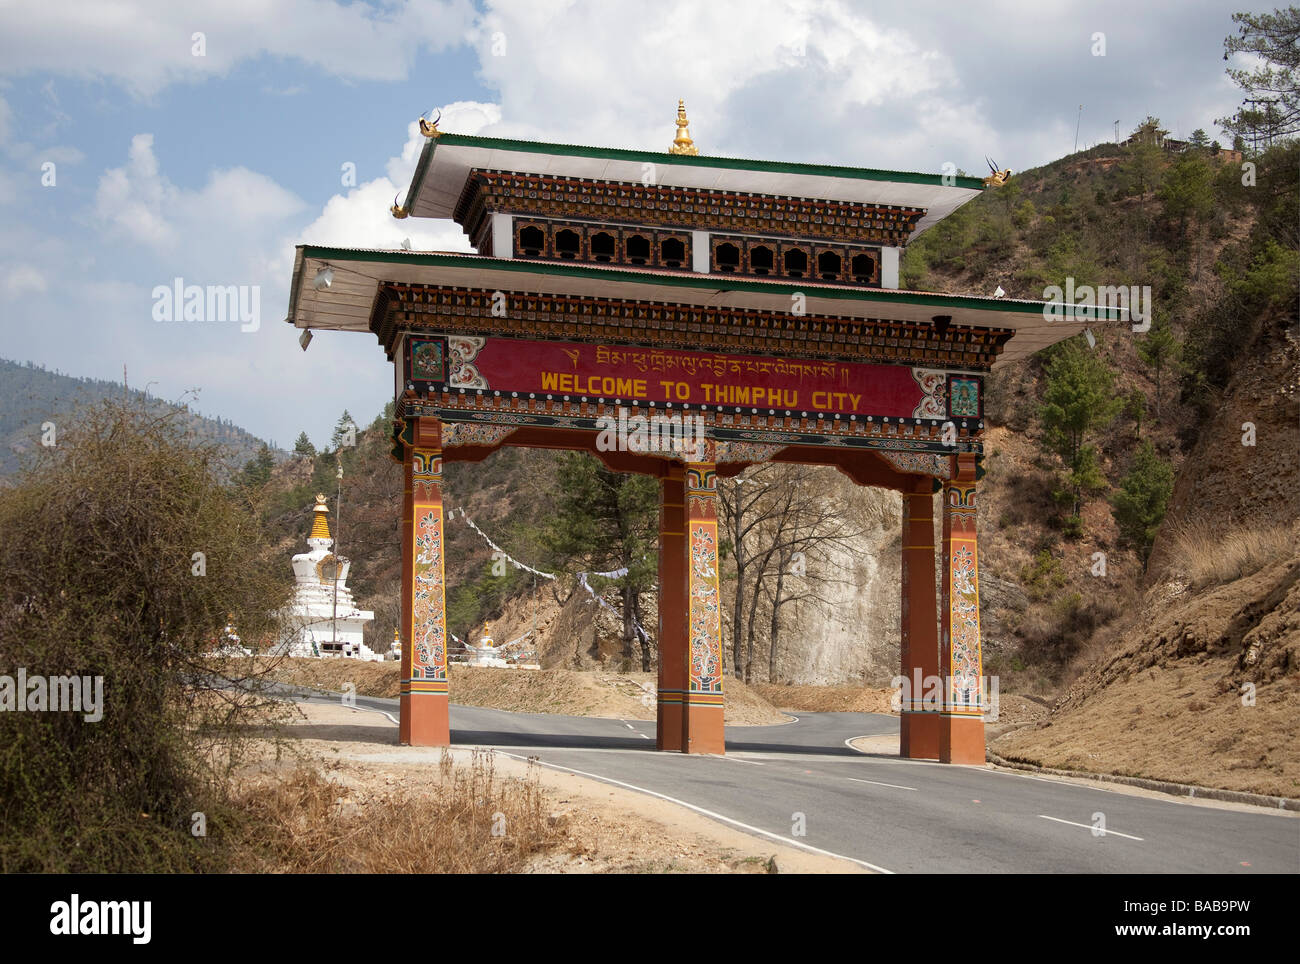 bhutan gate stock photos bhutan gate stock images alamy. Black Bedroom Furniture Sets. Home Design Ideas